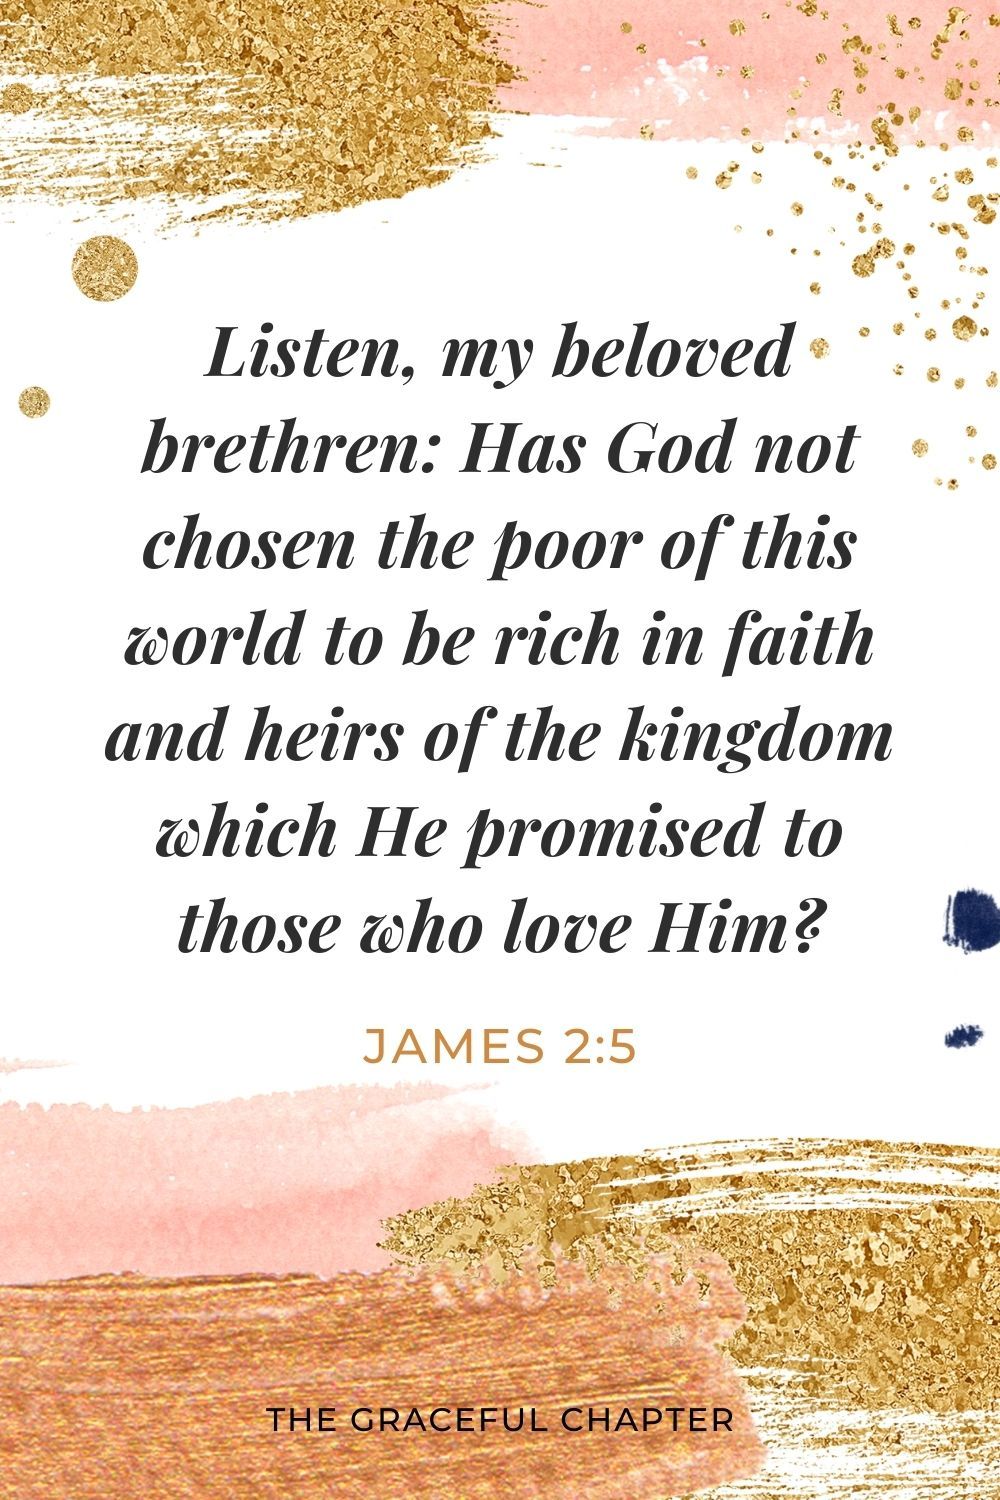 Listen, my beloved brethren: Has God not chosen the poor of this world to be rich in faith and heirs of the kingdom which He promised to those who love Him? James 2:5